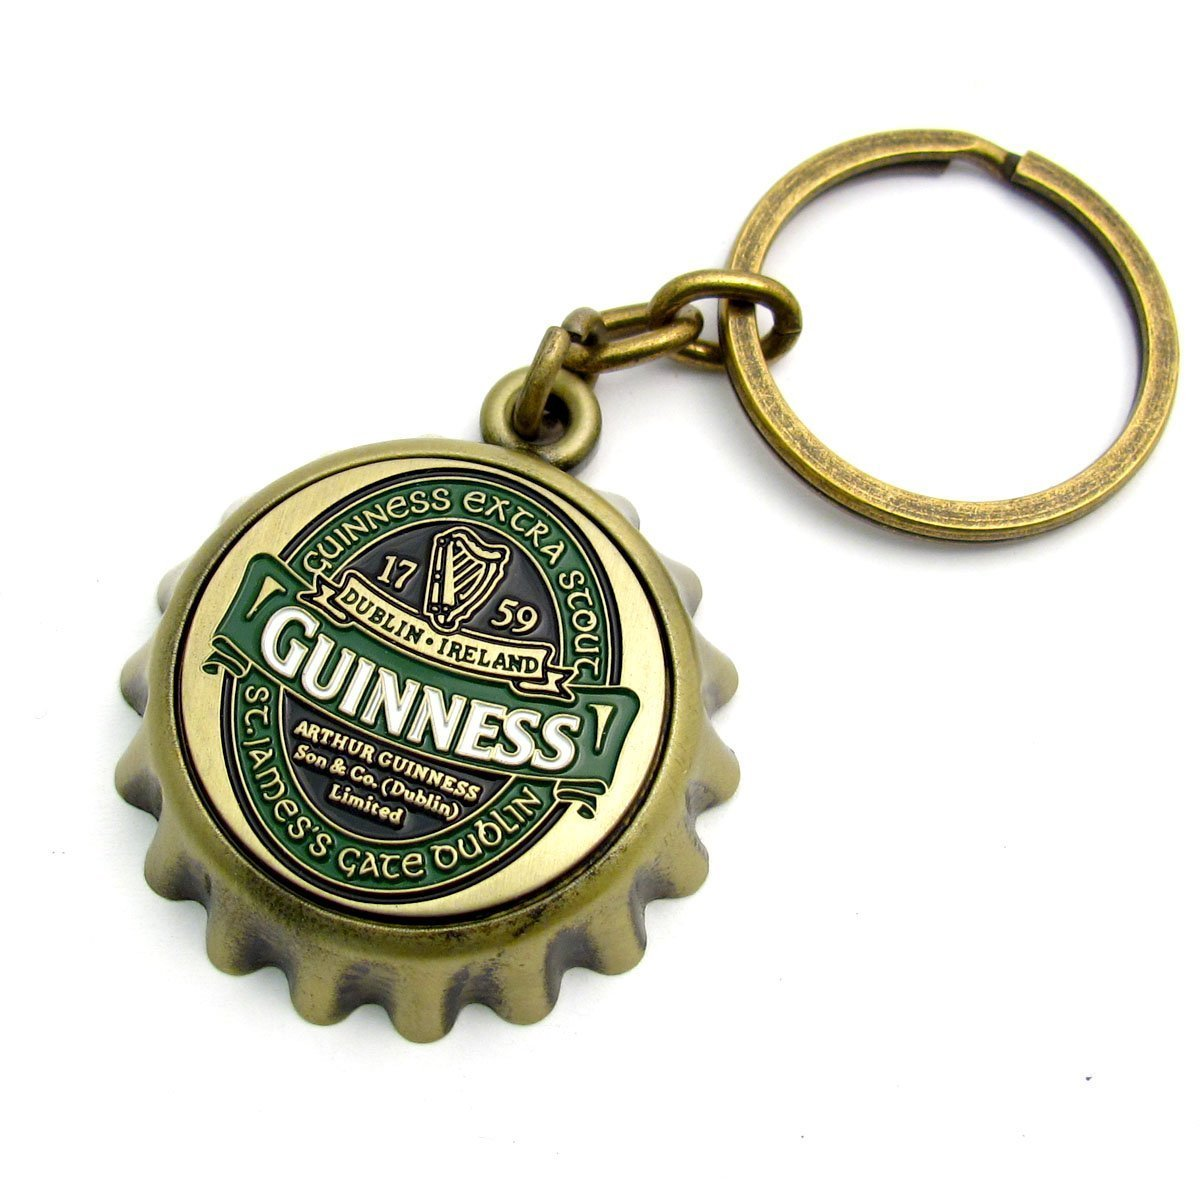 Bottlecap Keychain with St. James Gate Design - Guinness Ireland Collection COMINHKPR110968